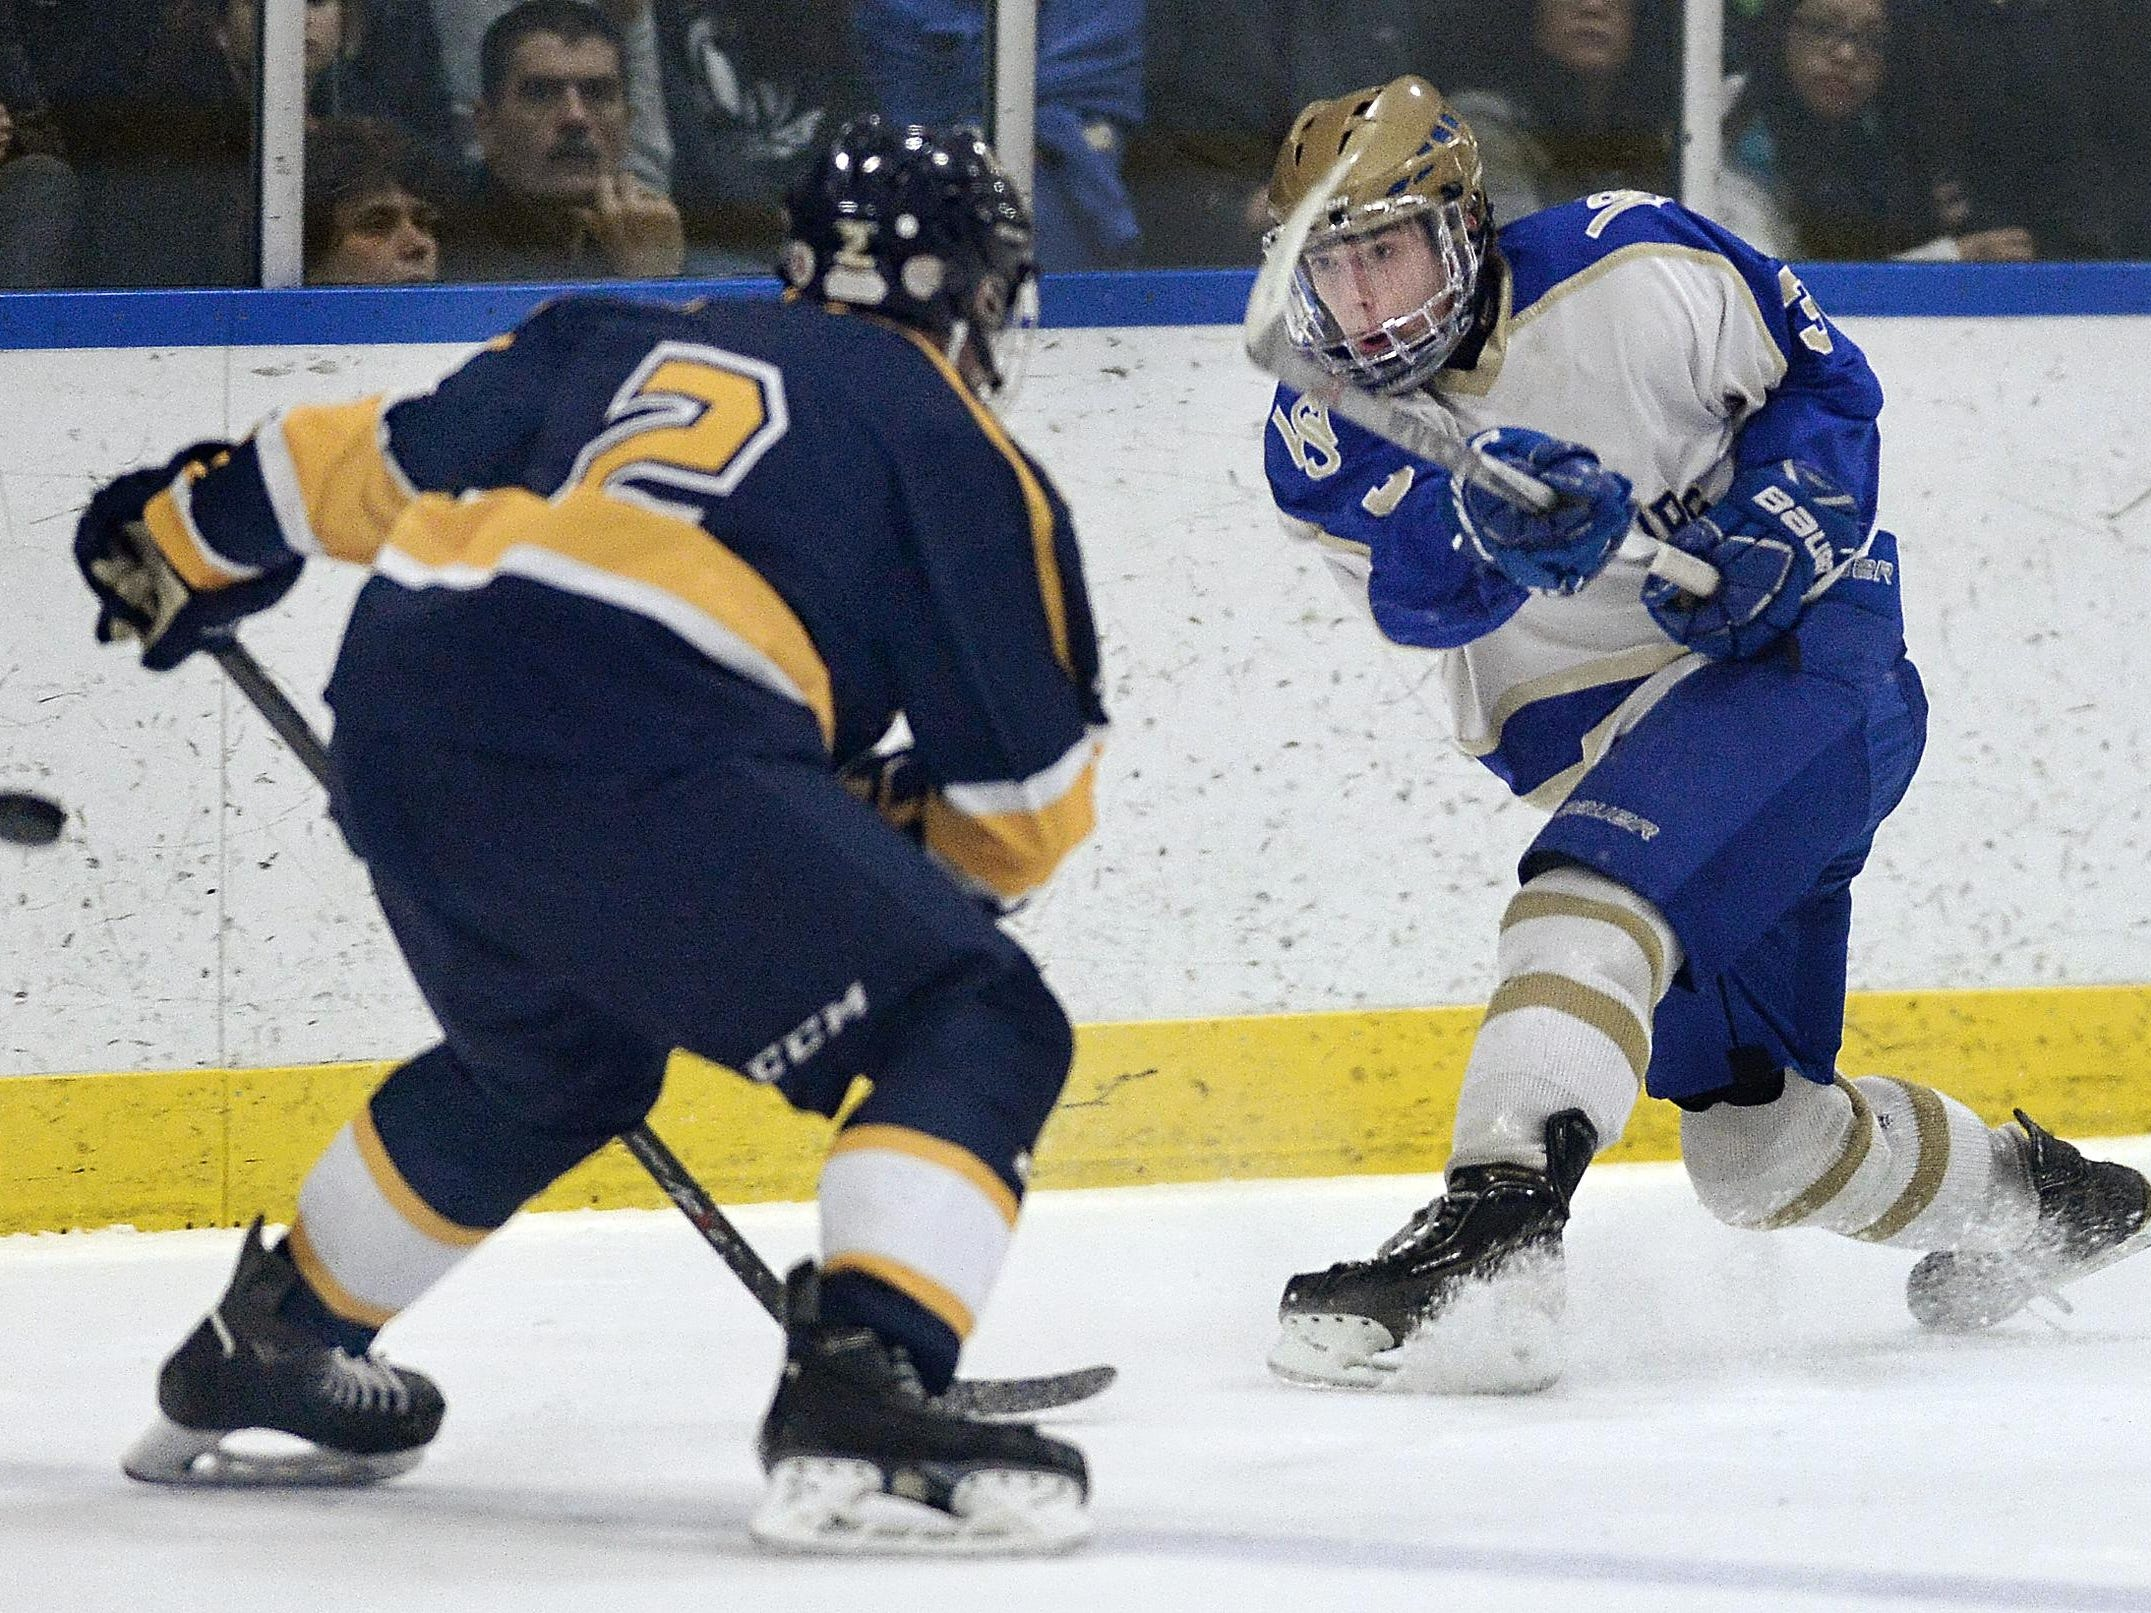 Webster Schroeder's Tommy Winn, right, takes a shot on goal past Webster Thomas defender Zachary Fosdick during regular season game played at Webster Ice Arean as part of the Robert J. Smith Memorial High School Hockey Showcase on Saturday, January 9, 2016. Webster Schroeder and Webster Thomas played to a 2-2 tie.